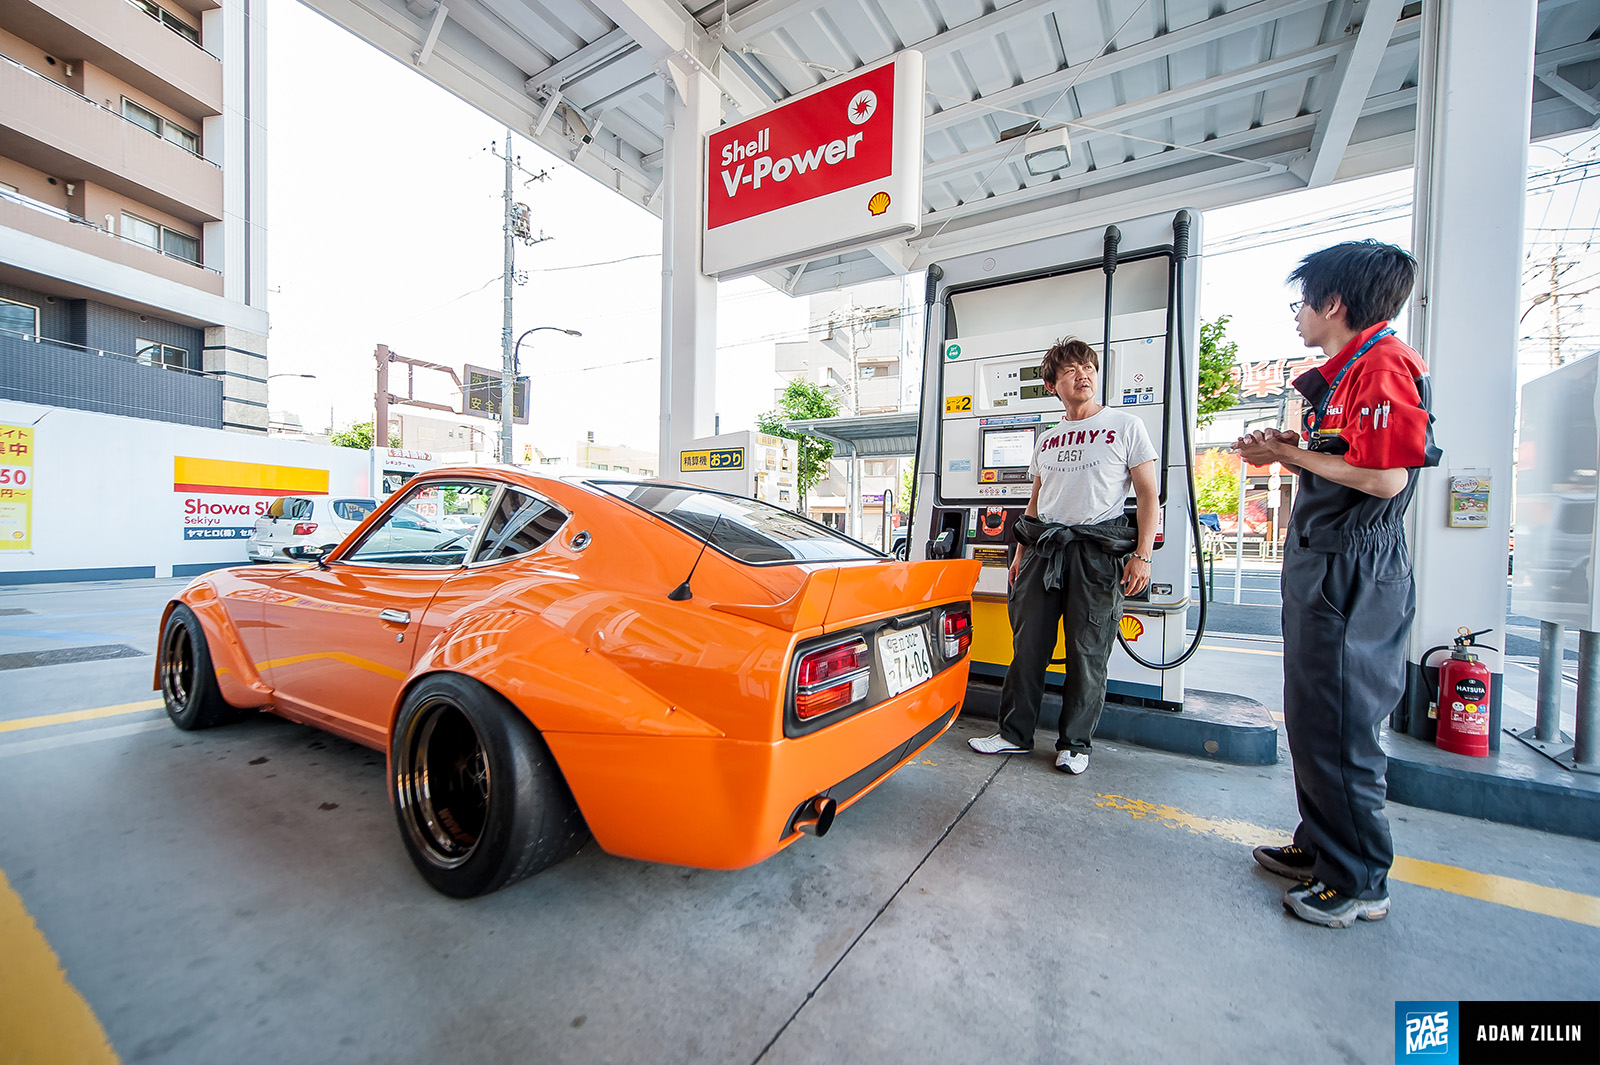 19Star Road Datsun S30 7tune PASMAG